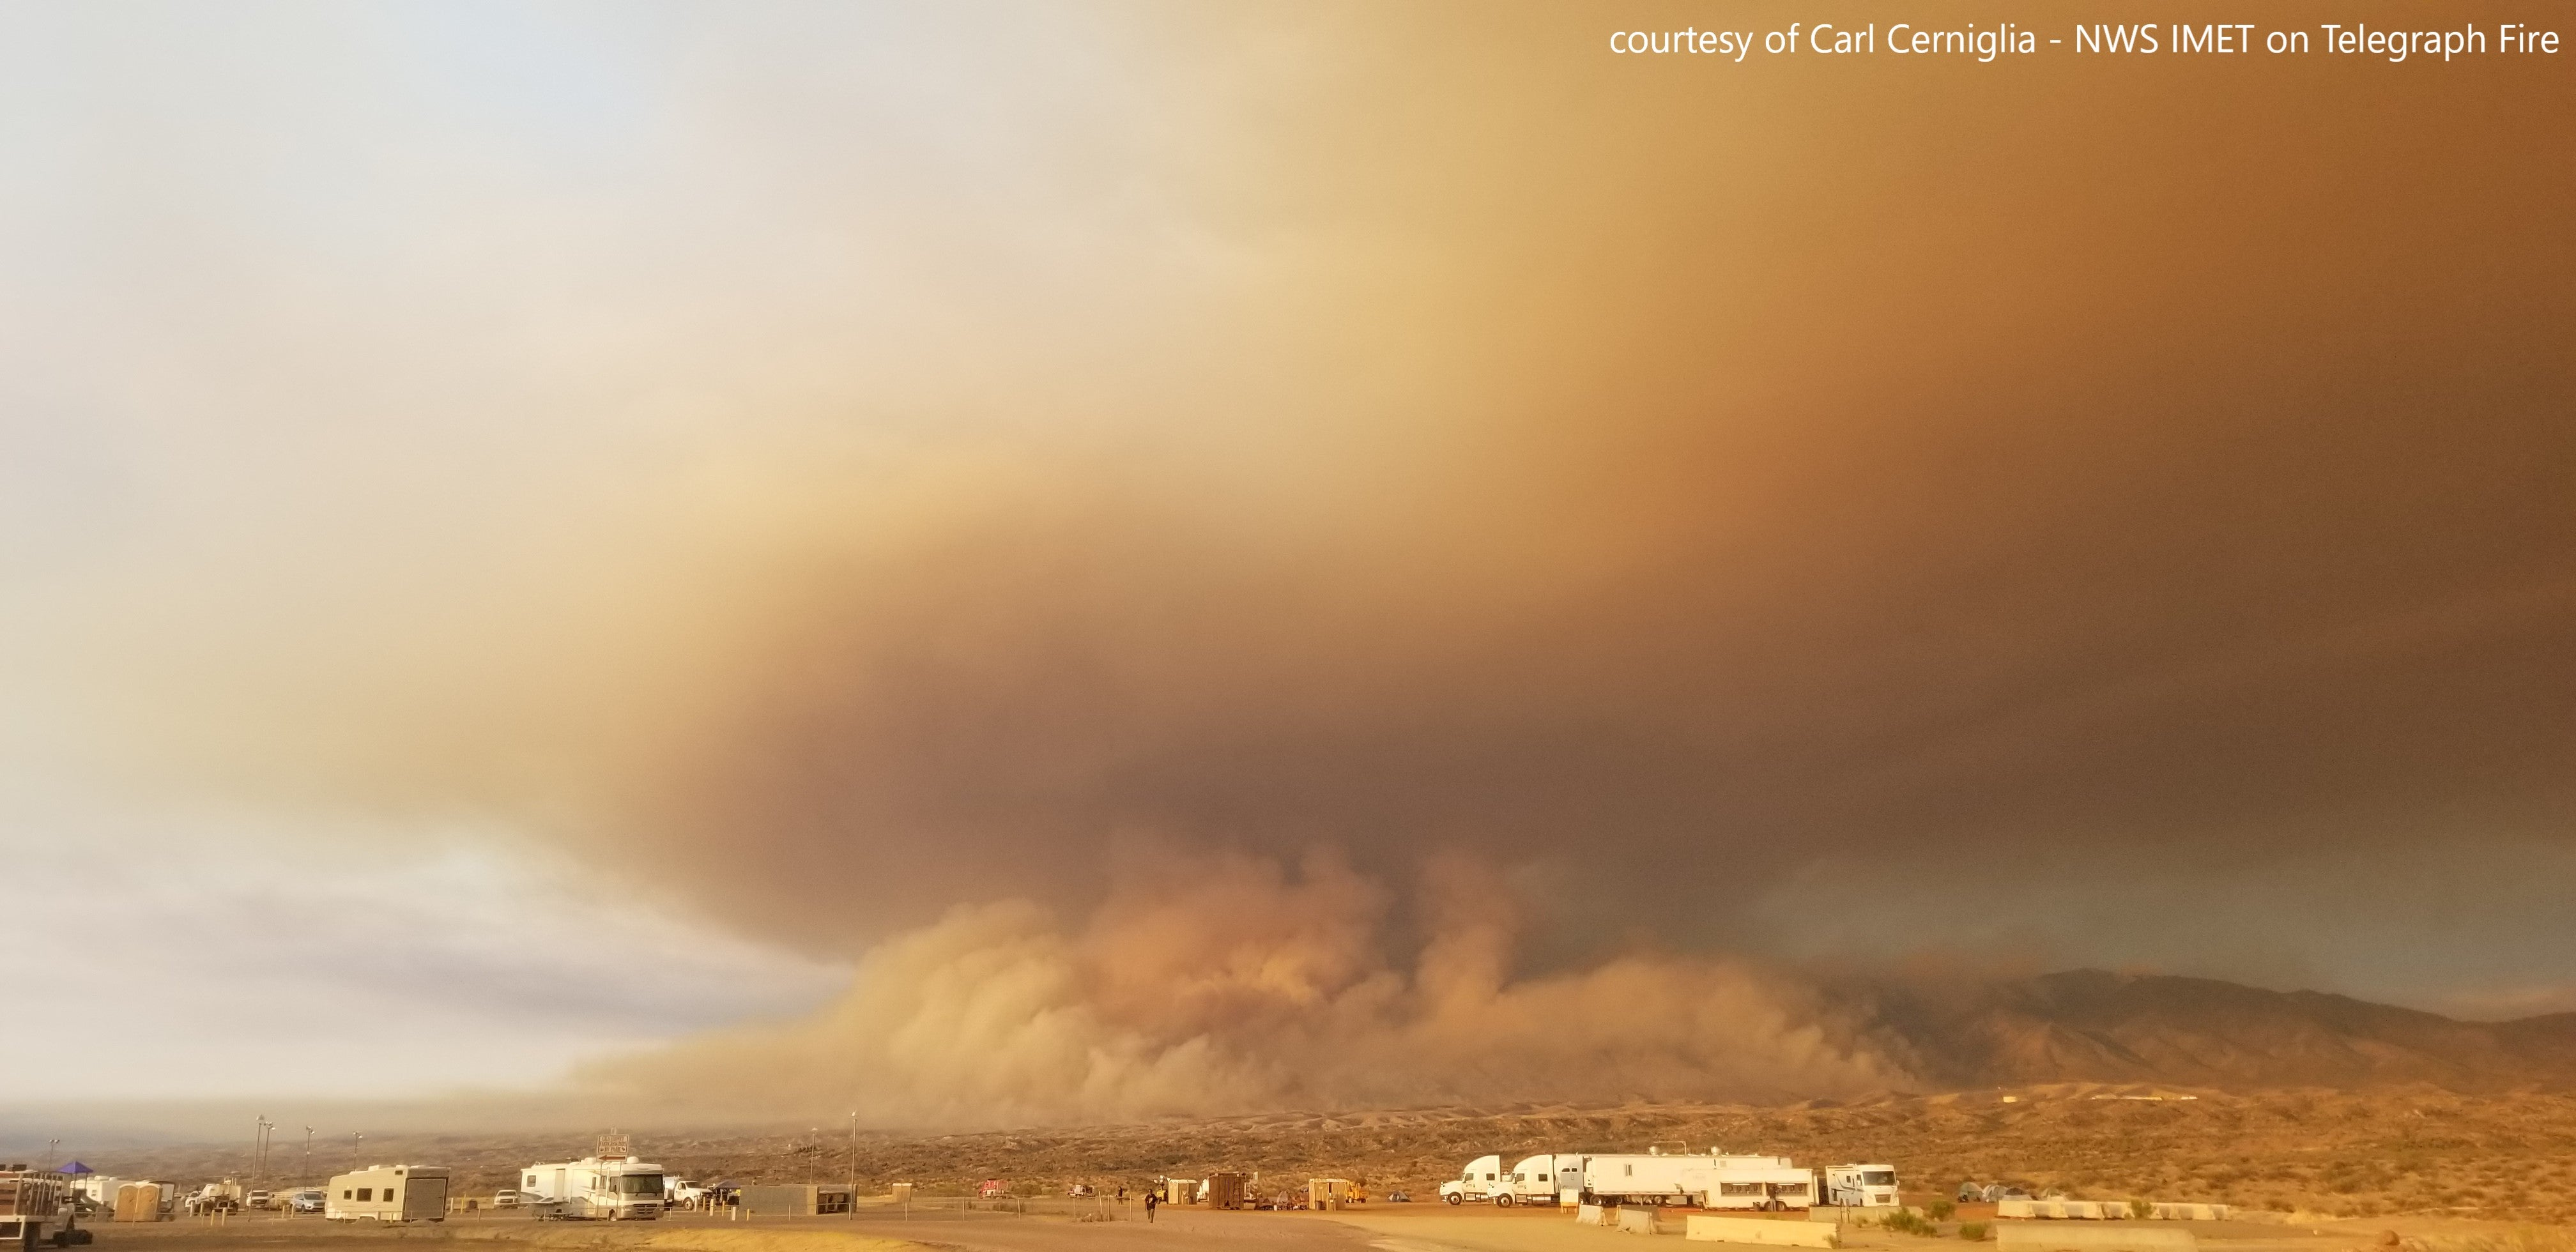 Telegraph Fire Continues to Burn in Central Arizona (PHOTOS)